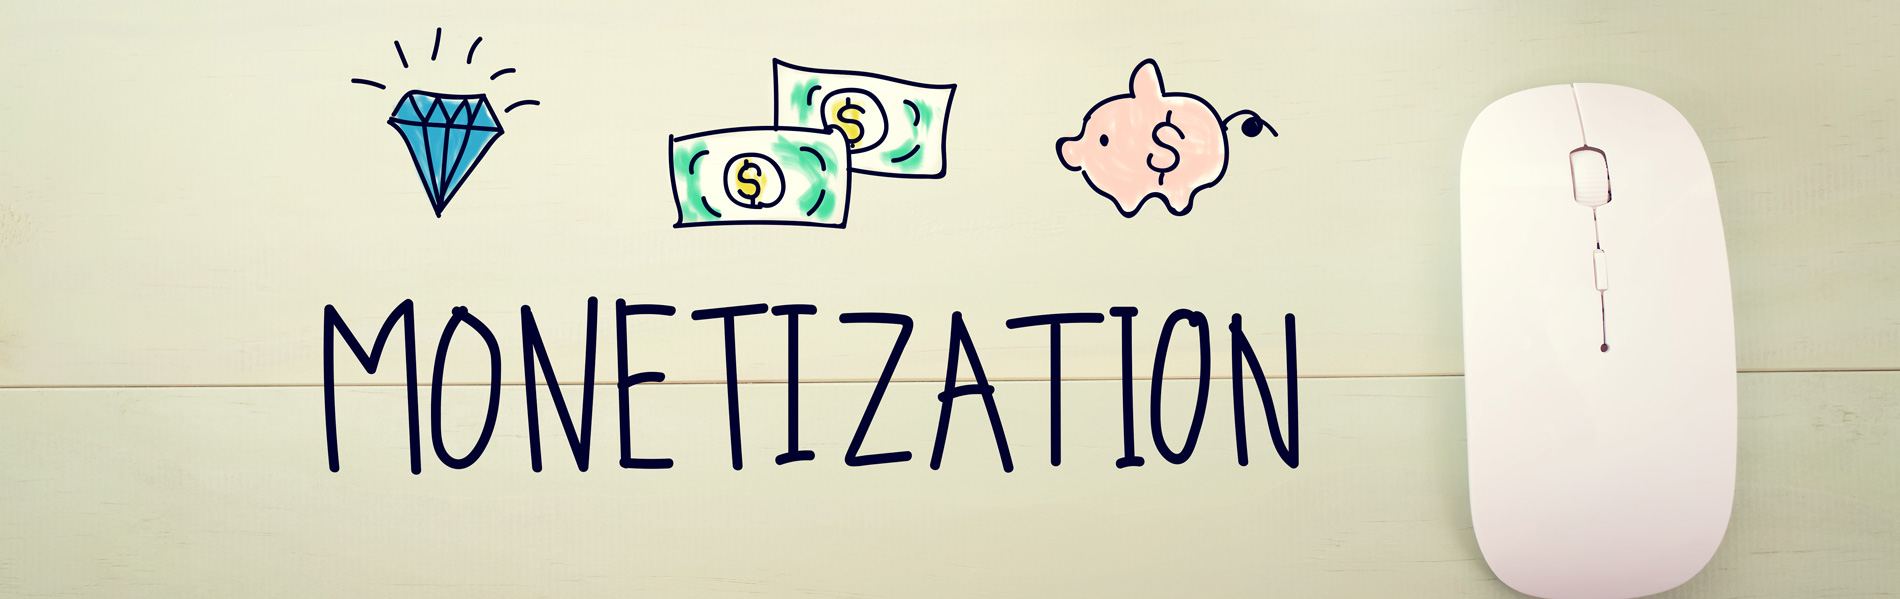 How-to-monetize-your-website-and-increase-revenue-for-your-blog